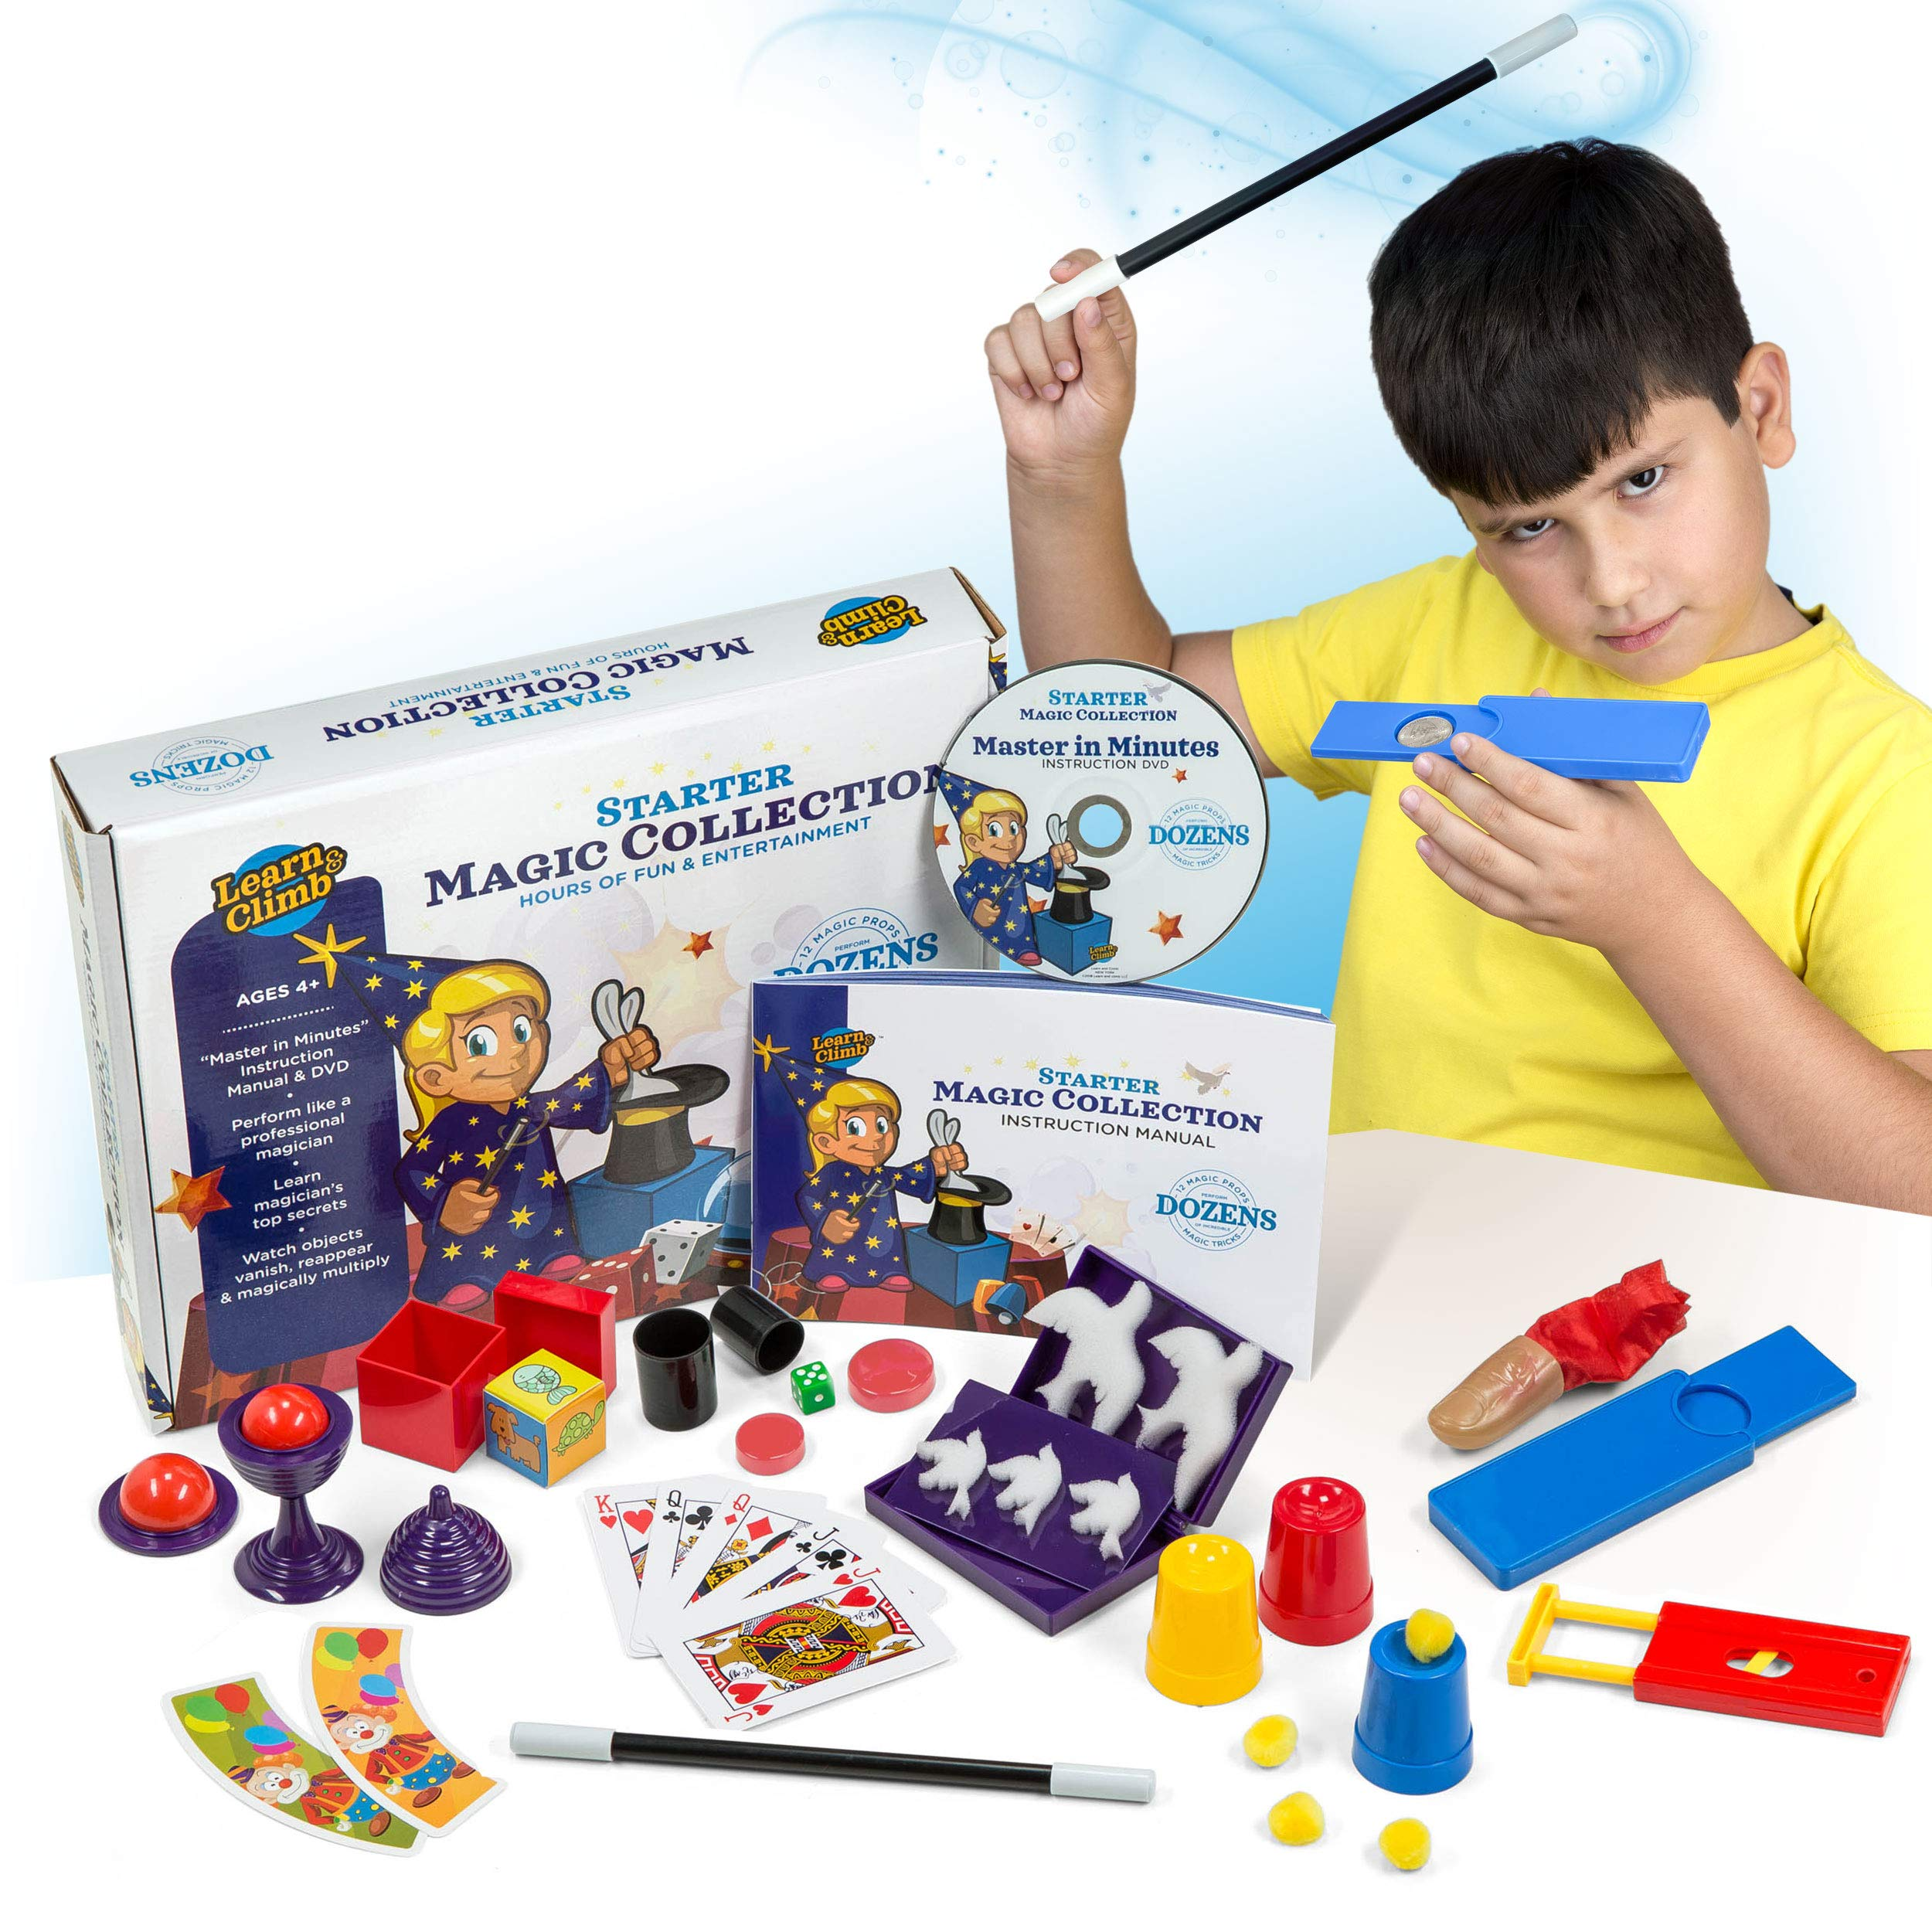 Learn & Climb Beginners Magic kit Set for Kids - Exciting Magician Tricks, Manual + Instruction DVD